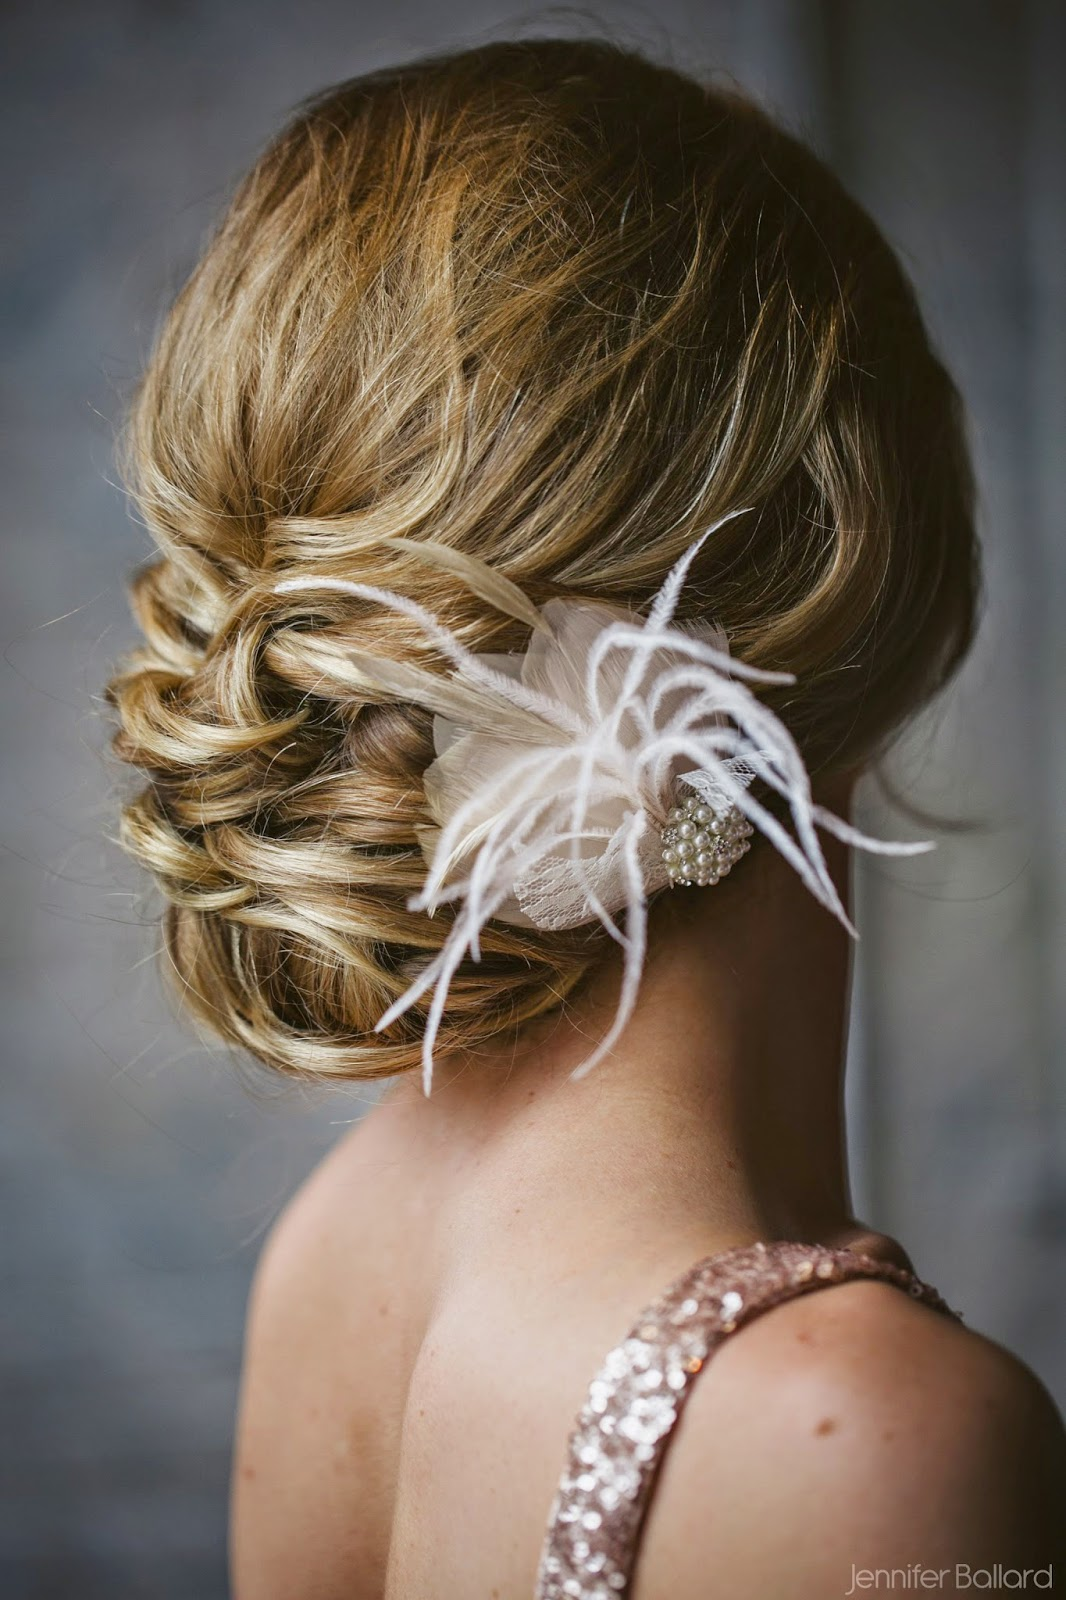 jessica jean myers: fav wedding hair of 2014 - updo edition